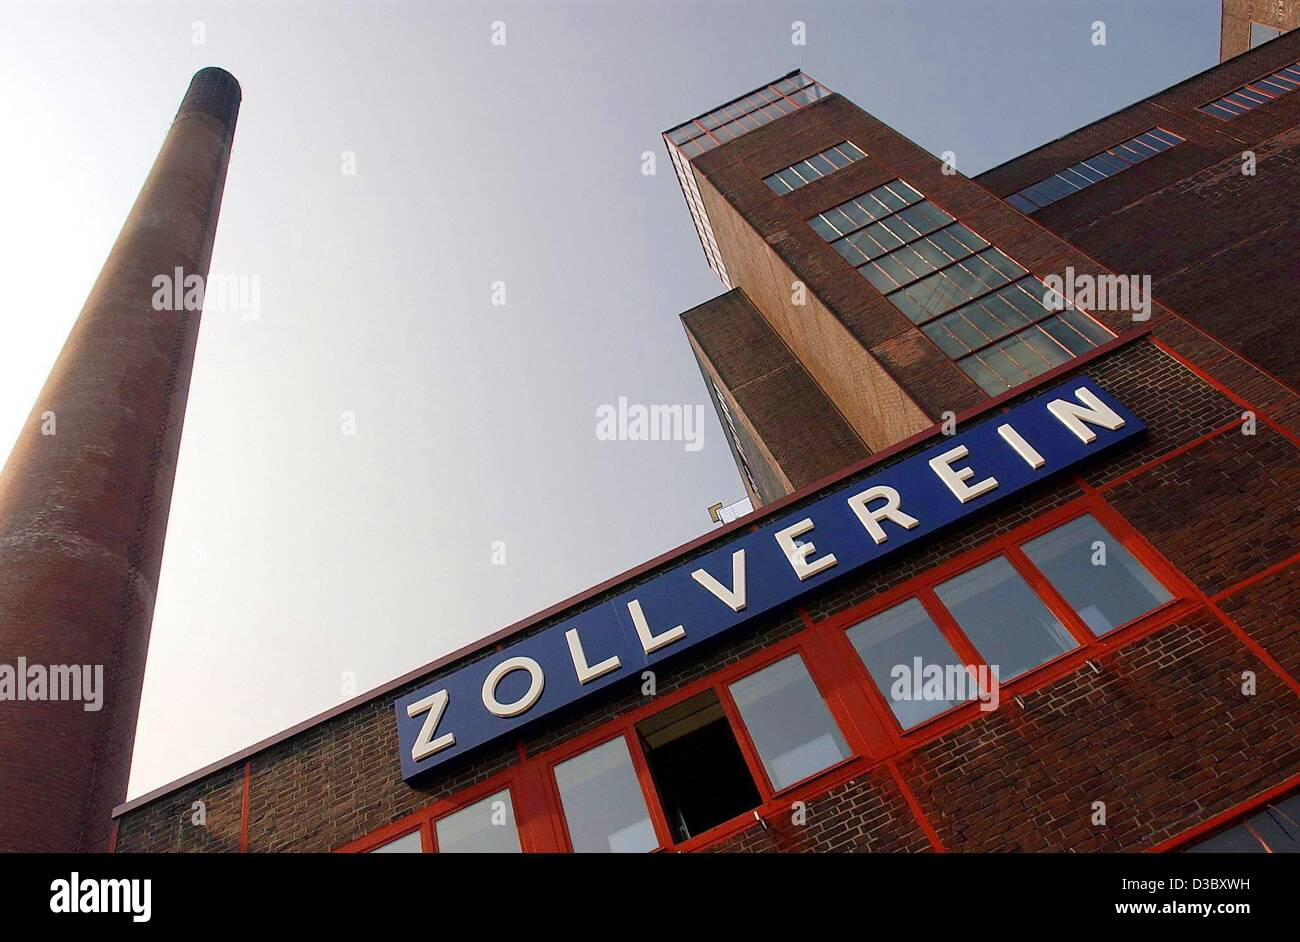 (dpa) - A chimney of the colliery Zollverein (German customs union) towers above a mine building in Essen, Germany, - Stock Image